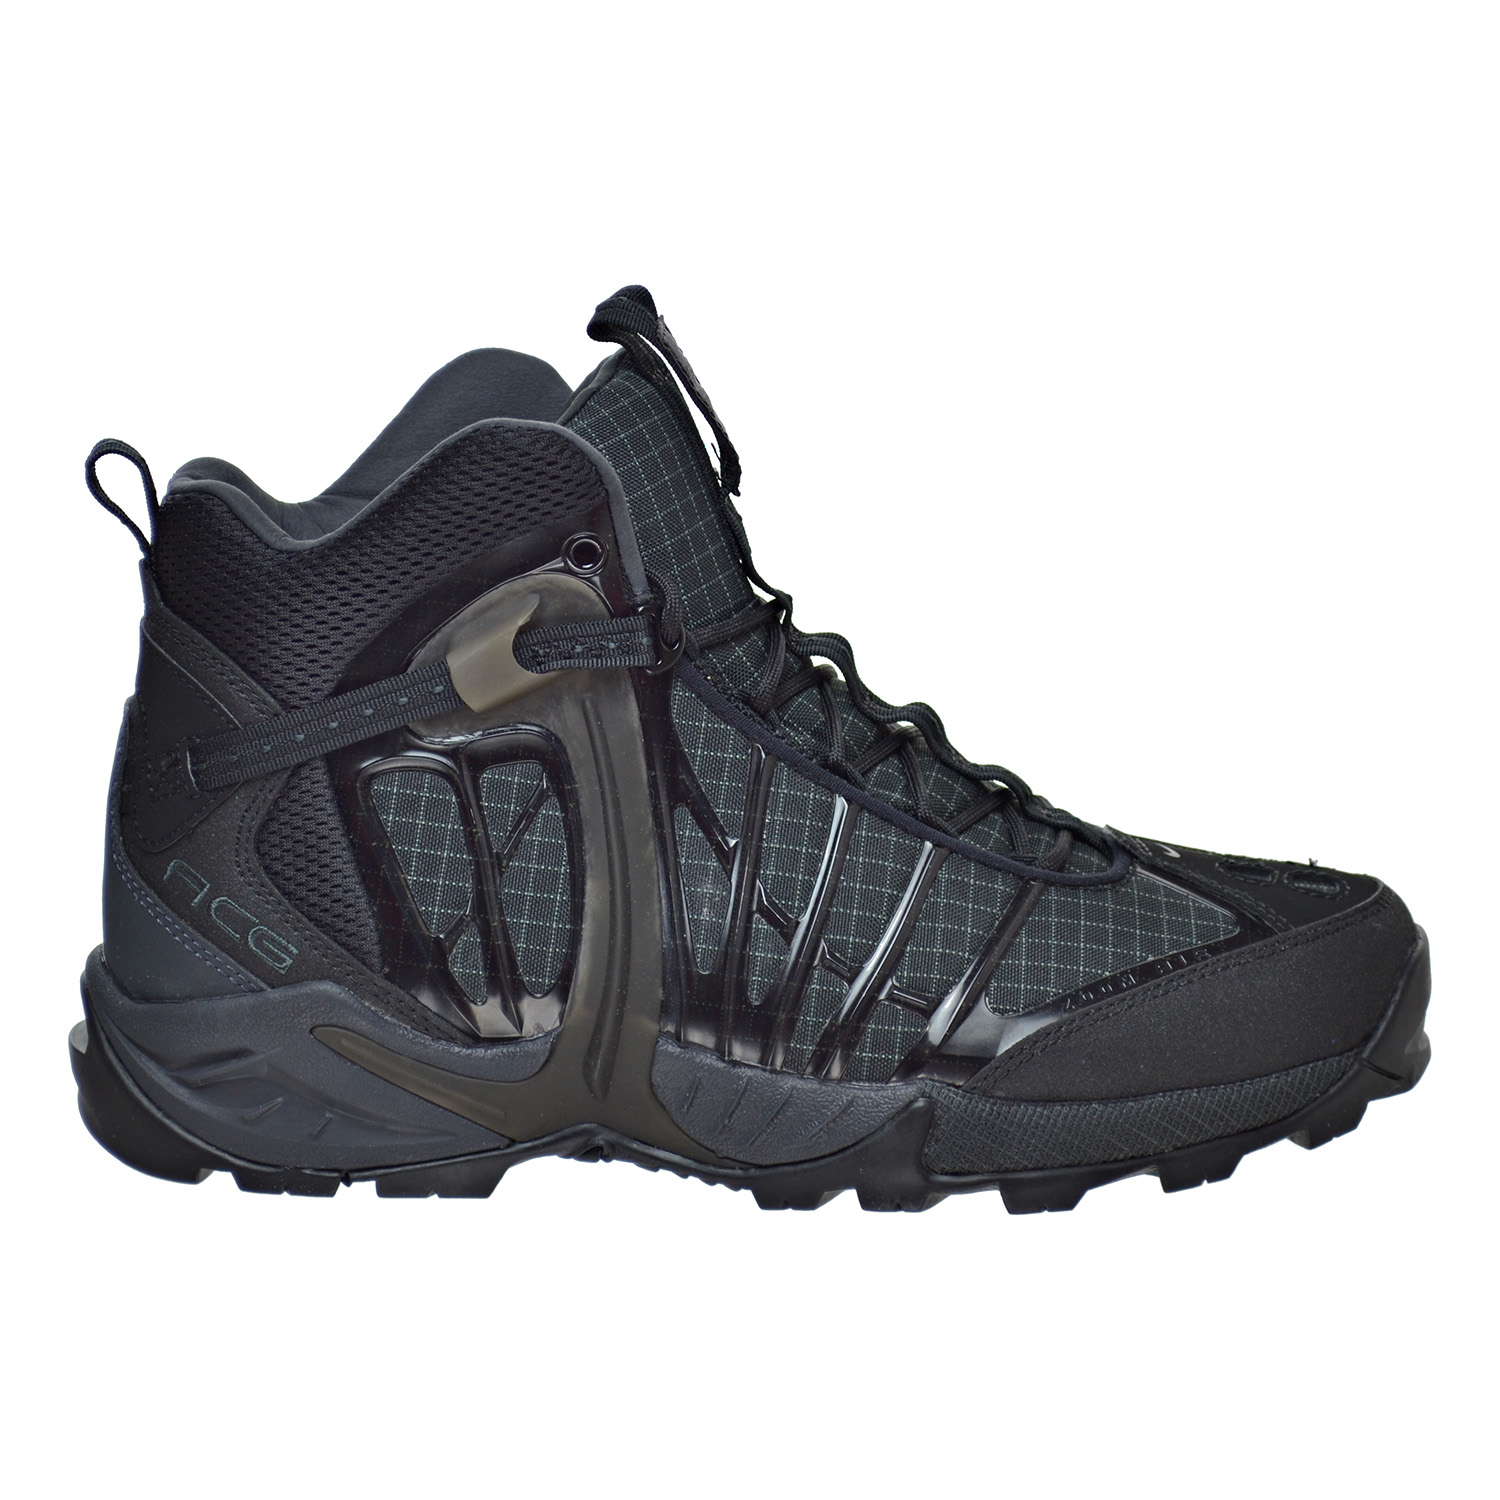 new concept ce5e5 1f731 Details about Nike Air Zoom Tallac Lite OG Men s Boot s Black 844018-003